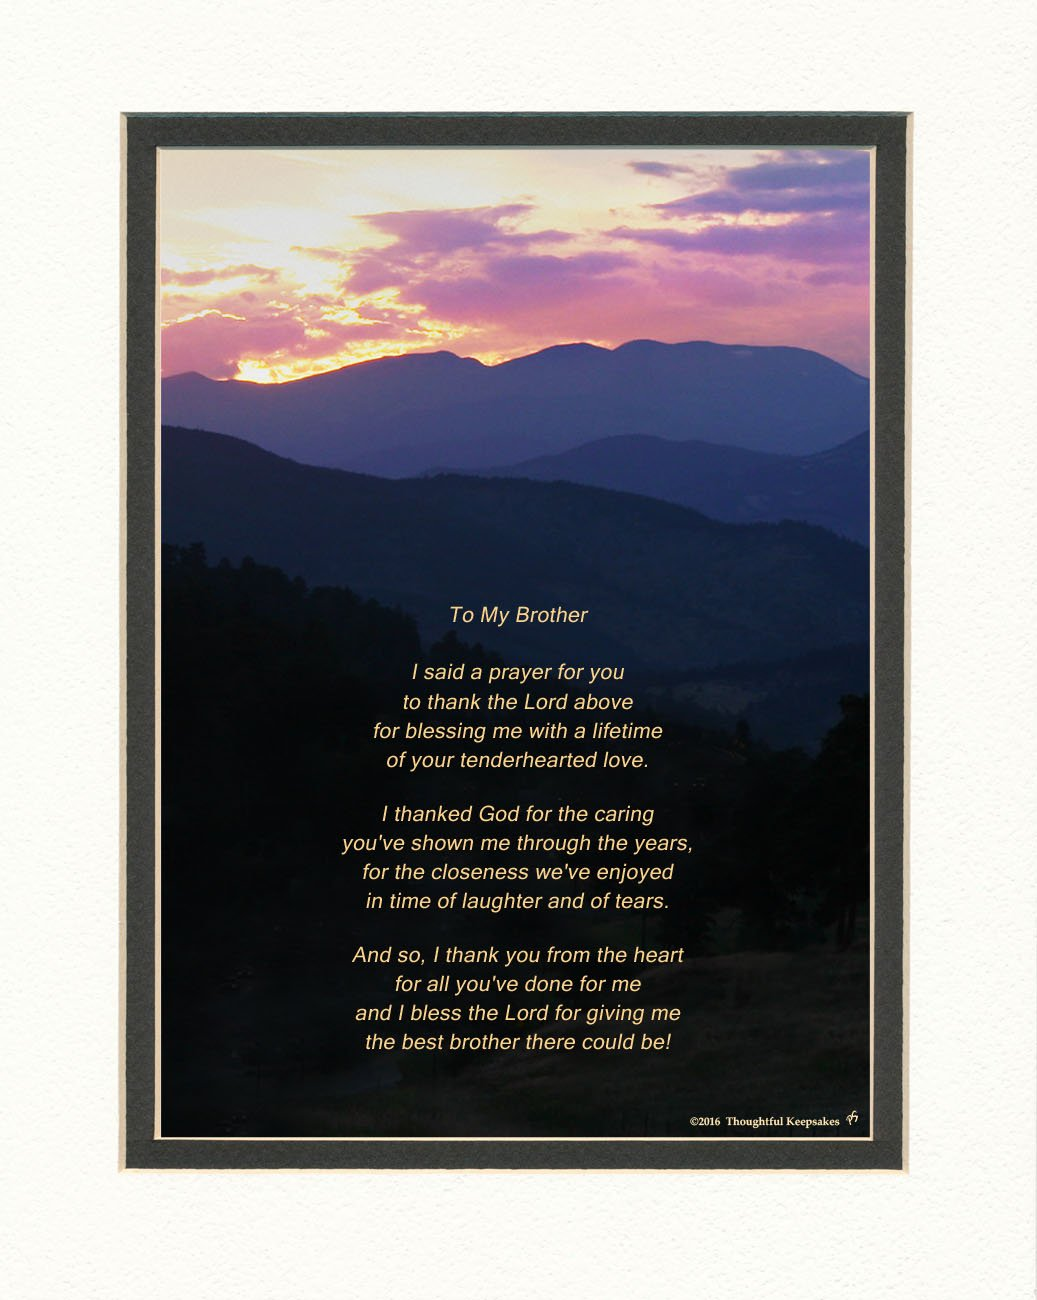 Brother Gift with ''Thank You Prayer for Best Brother'' Poem. Mts Sunset Photo, 8x10 Double Matted. Special Unique Birthday, Christmas Gift for Brother by Sister, Brother, Cousin Gifts